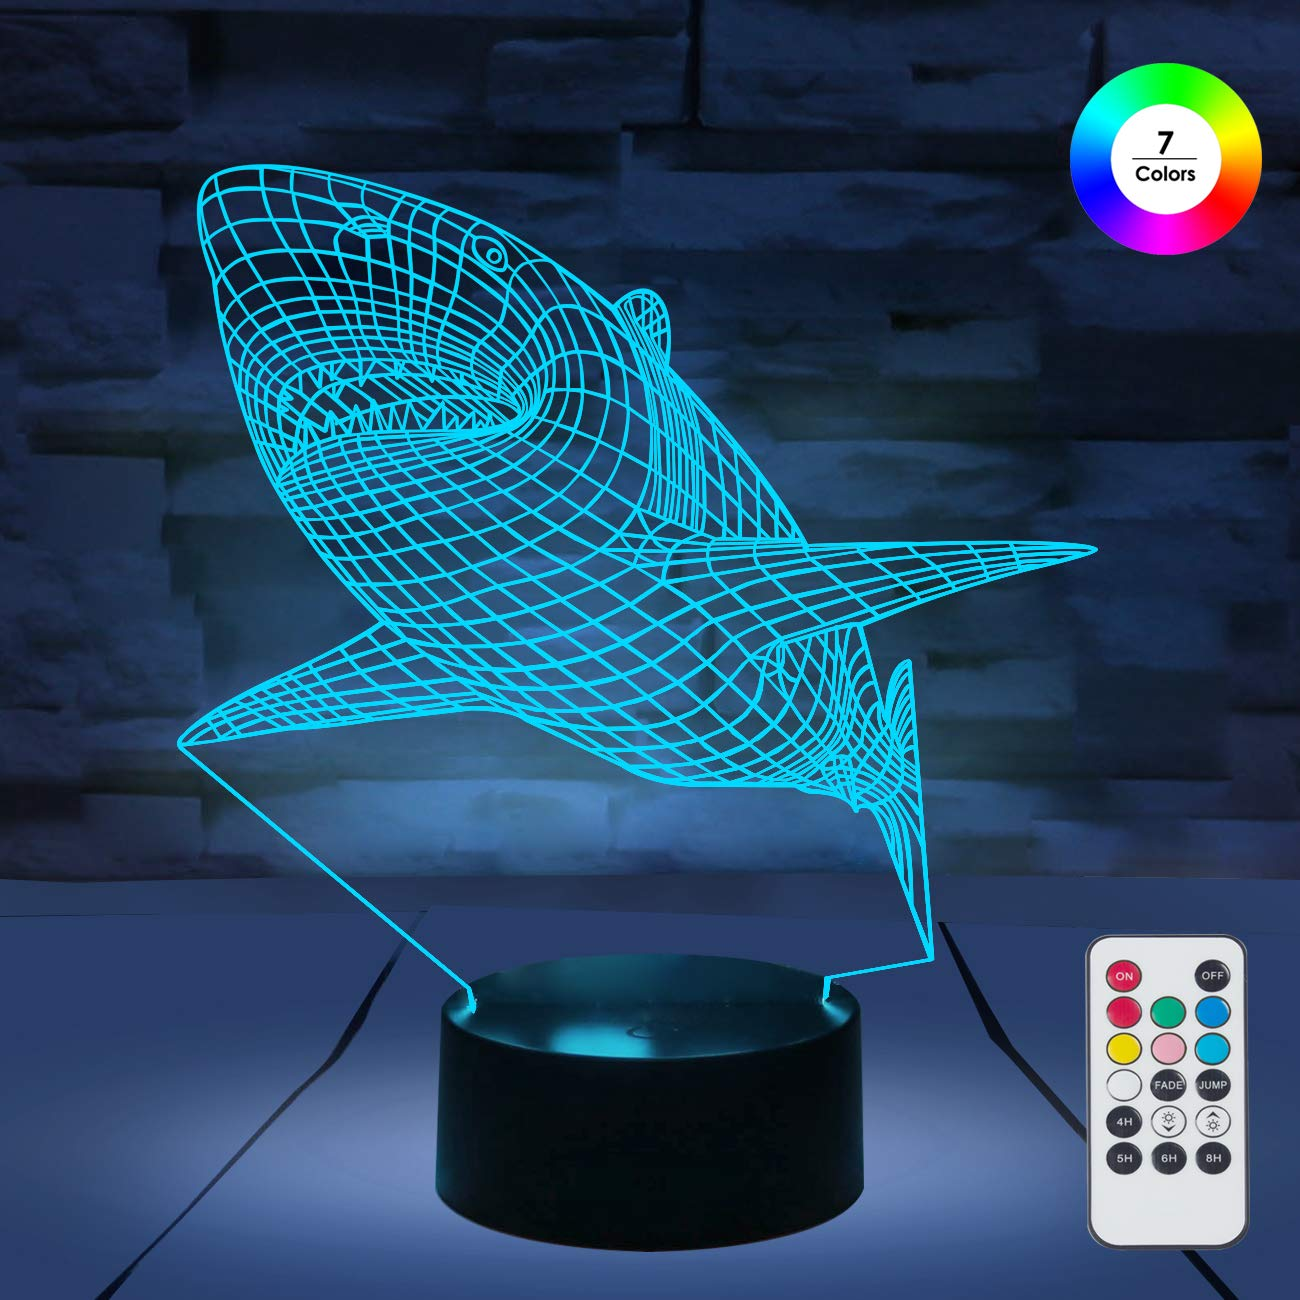 [ 7 Colors/3 Working Modes/Timer Function ] Remote and Touch Control Shark Night Lights, Dimmable LED Bedside Lamp for Children and Kid's Room